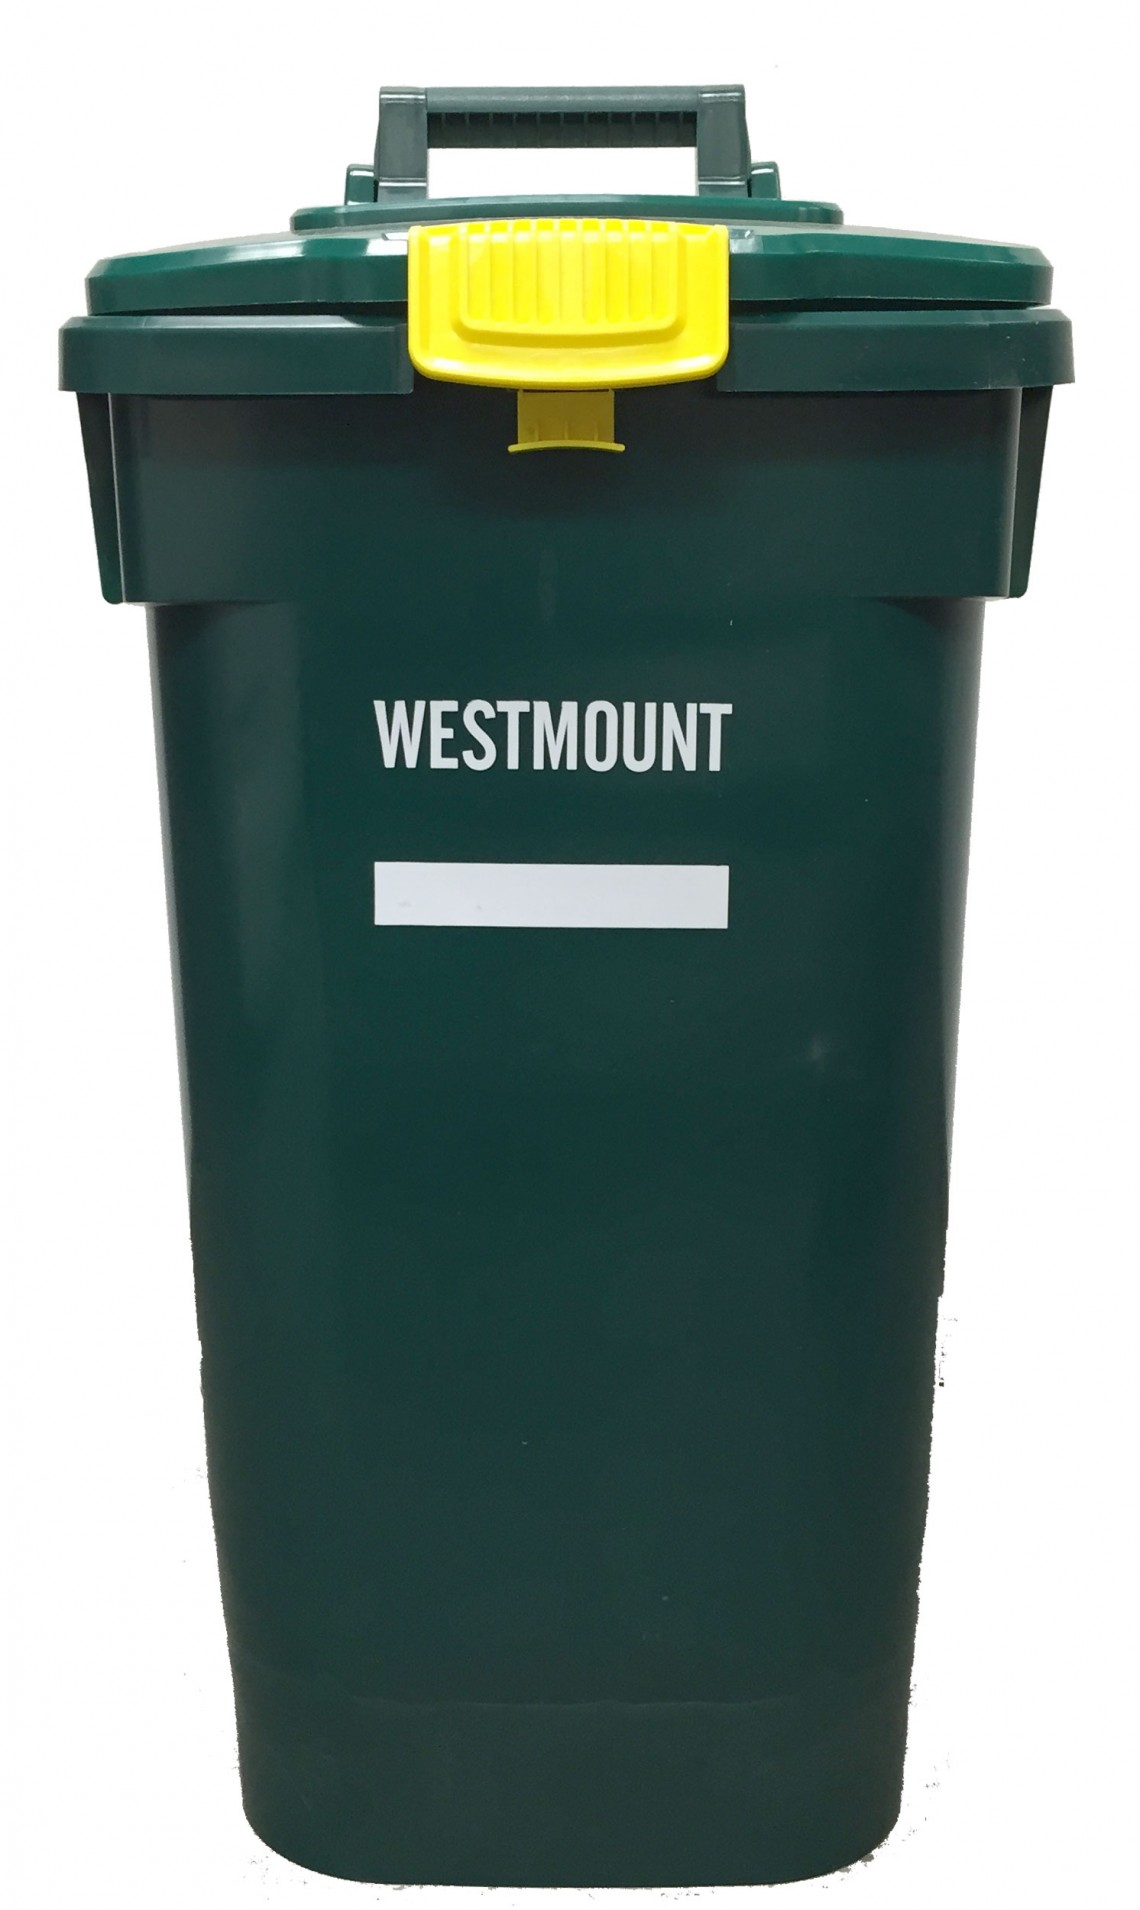 greenbin_front_web